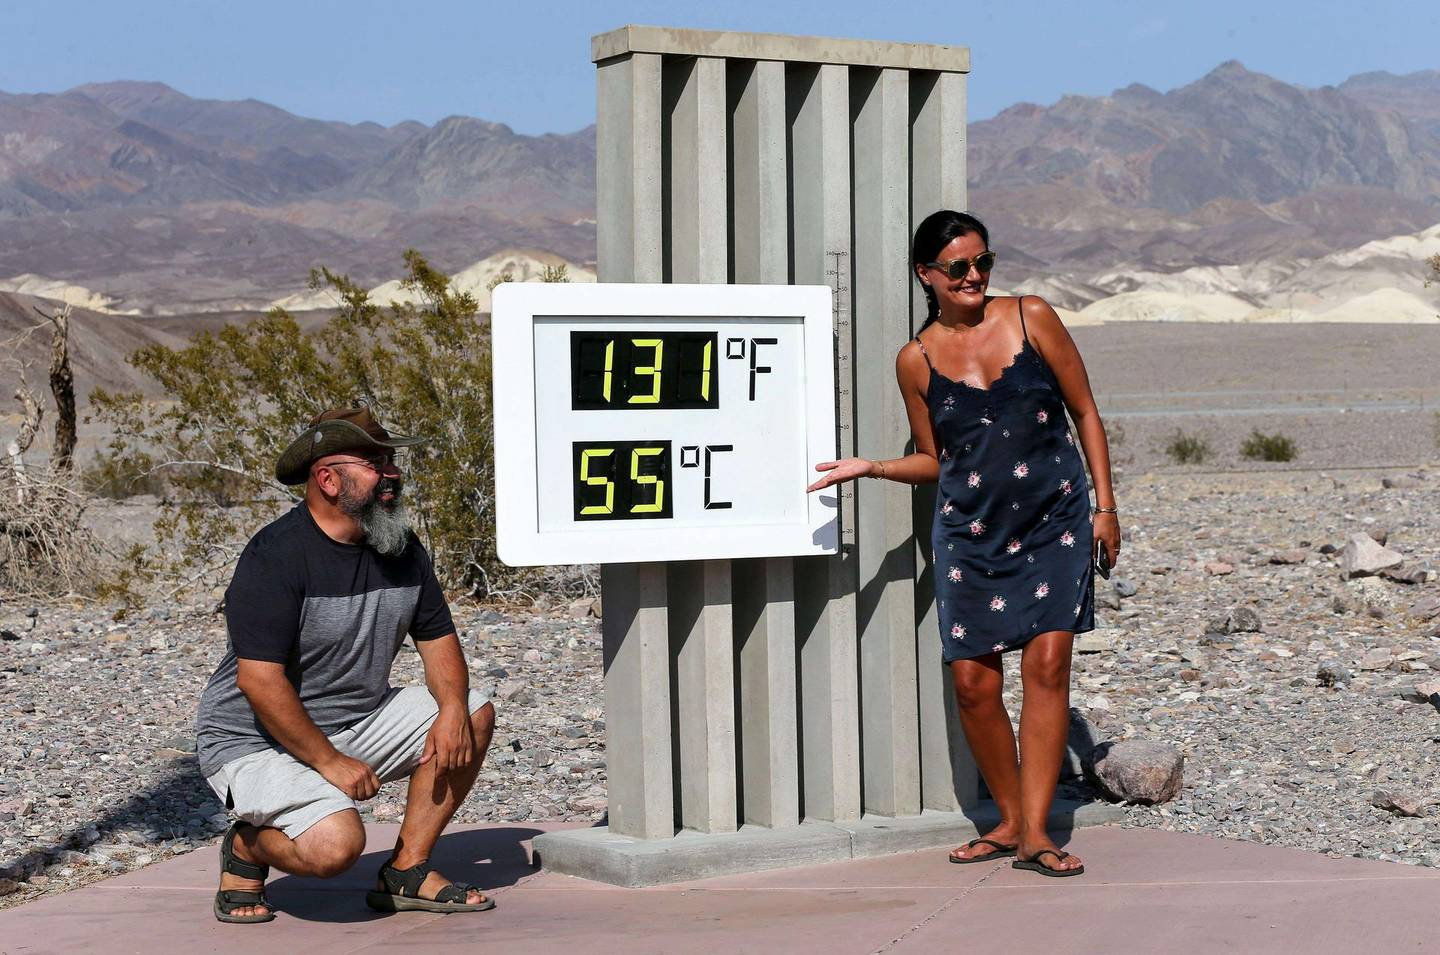 DEATH VALLEY NATIONAL PARK, CALIFORNIA - AUGUST 17: Visitors gather for a photo in front of an unofficial thermometer at Furnace Creek Visitor Center on August 17, 2020 in Death Valley National Park, California. The temperature reached 130 degrees at Death Valley National Park on August 16, hitting what may be the hottest temperature recorded on Earth since at least 1913, according to the National Weather Service. Park visitors have been warned, Travel prepared to survive.   Mario Tama/Getty Images/AFP == FOR NEWSPAPERS, INTERNET, TELCOS & TELEVISION USE ONLY ==